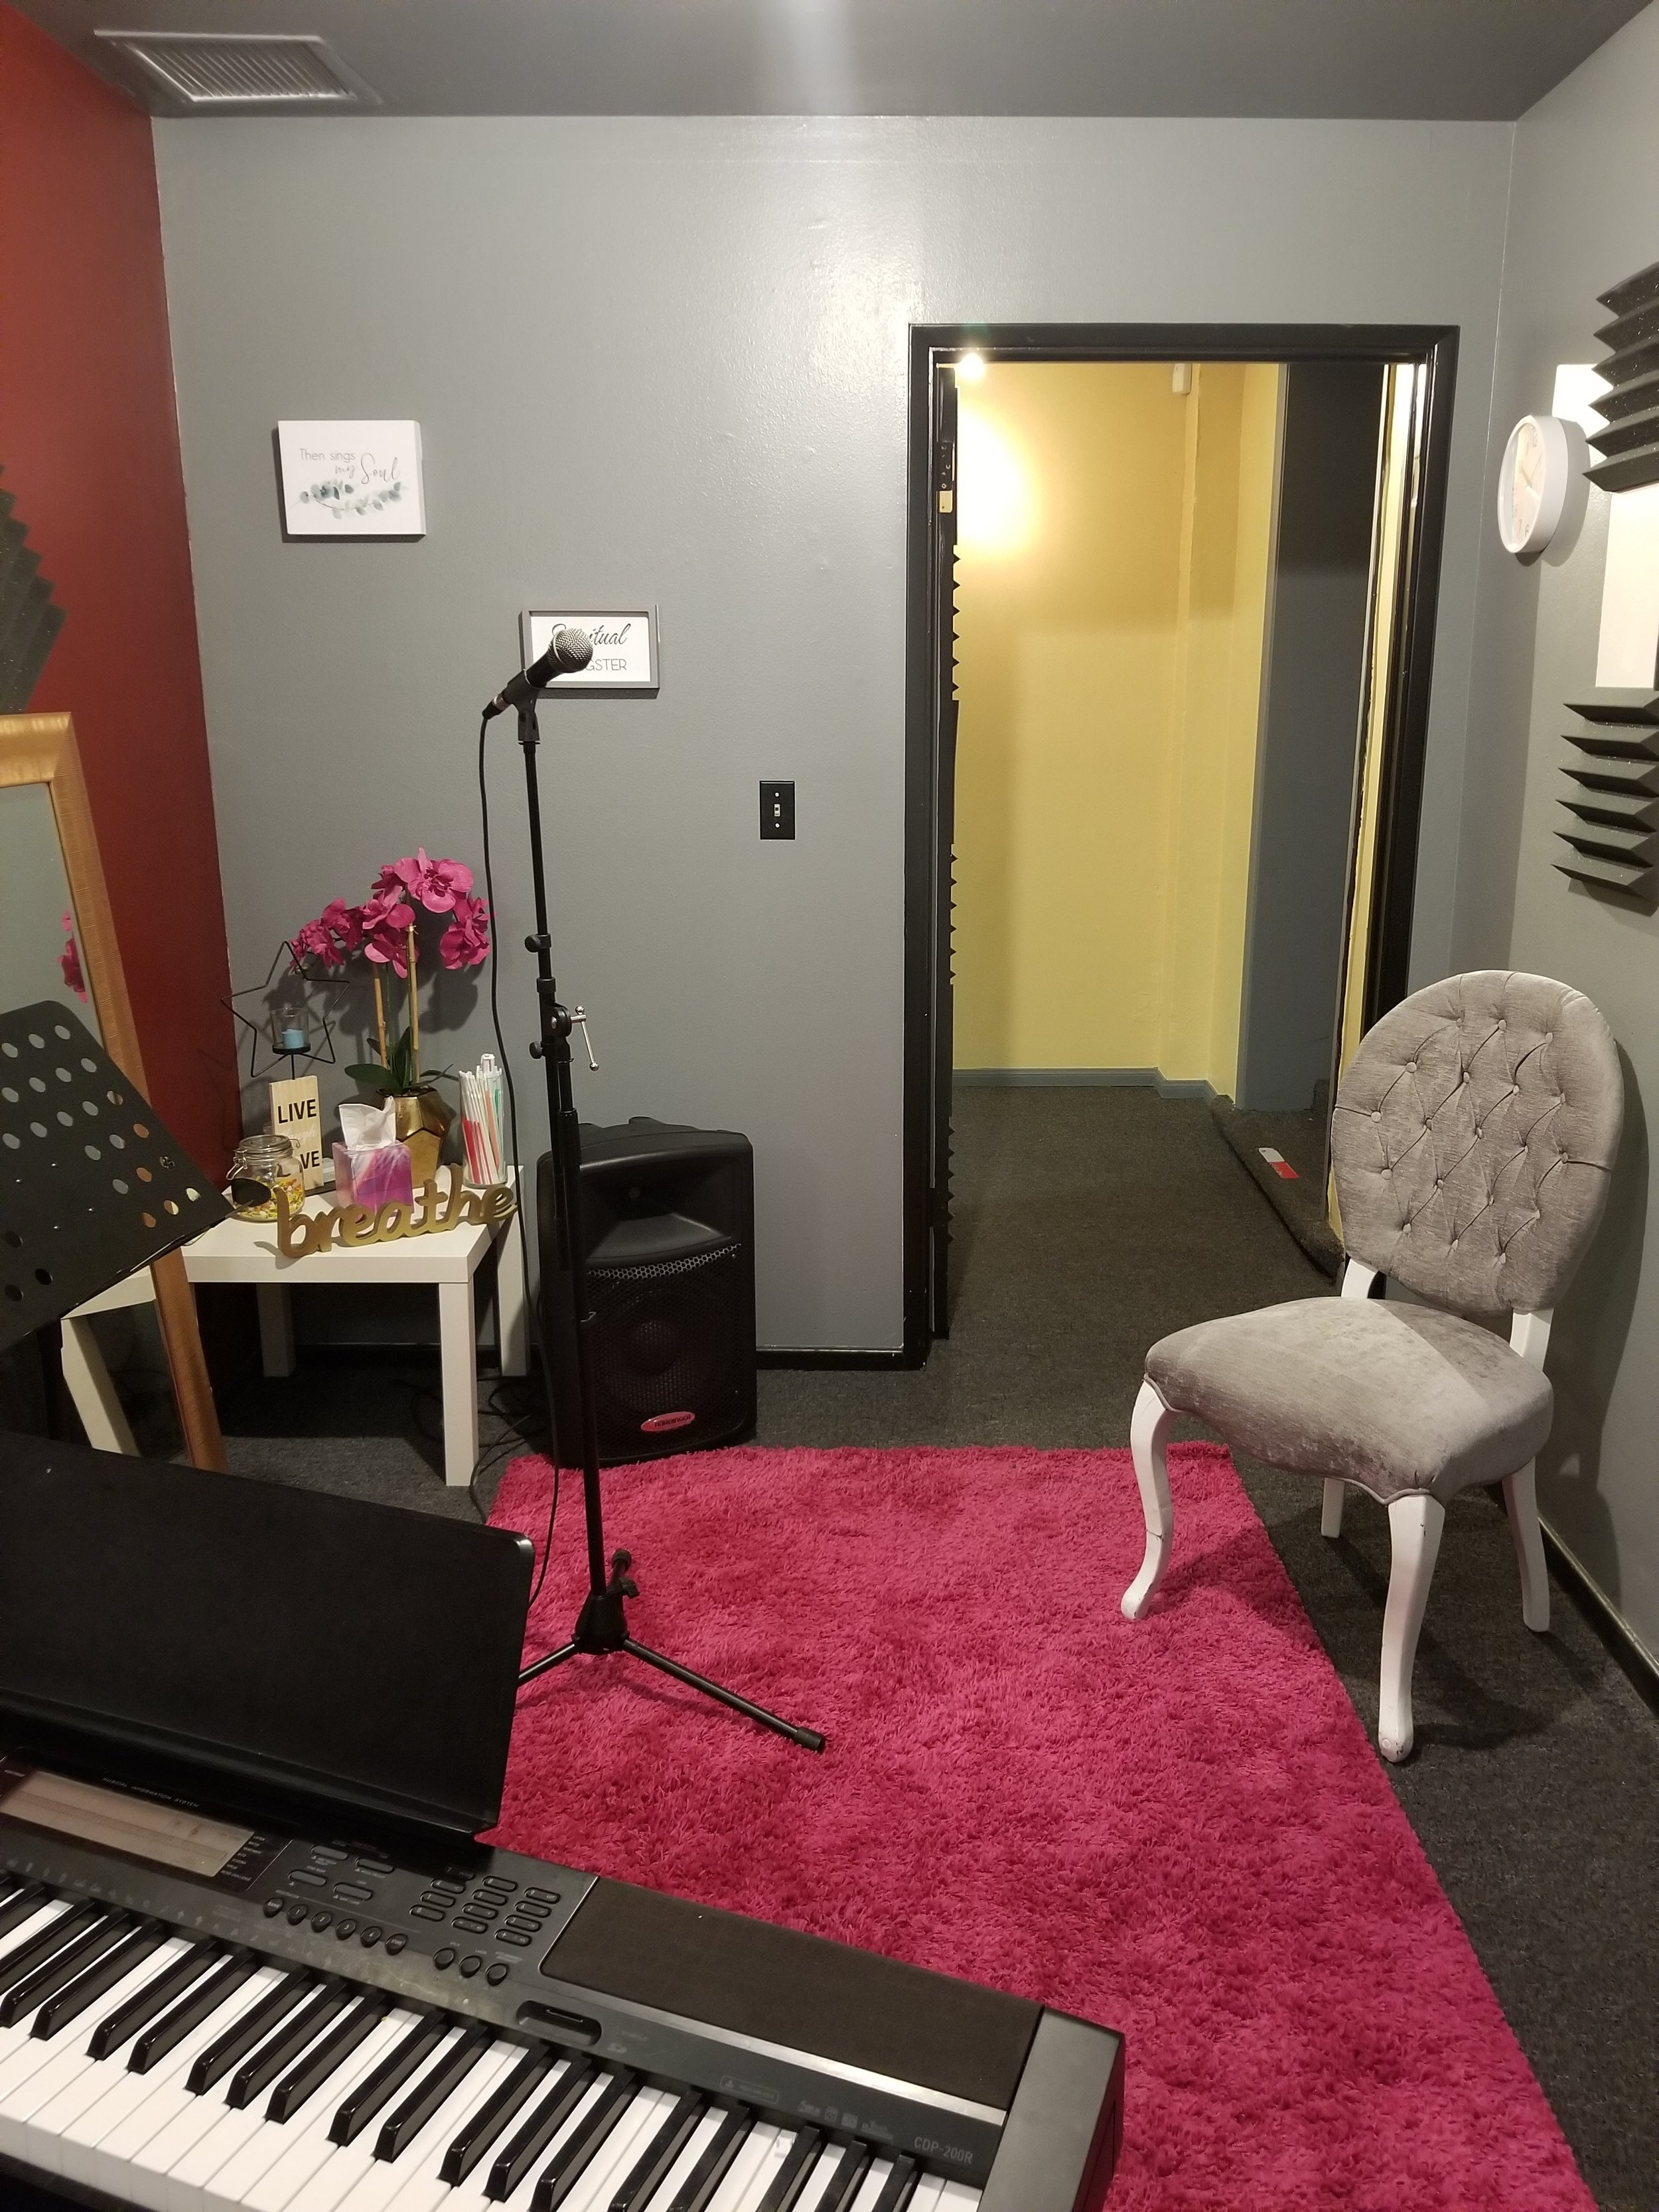 Singers' room - Where the Magic Happens!